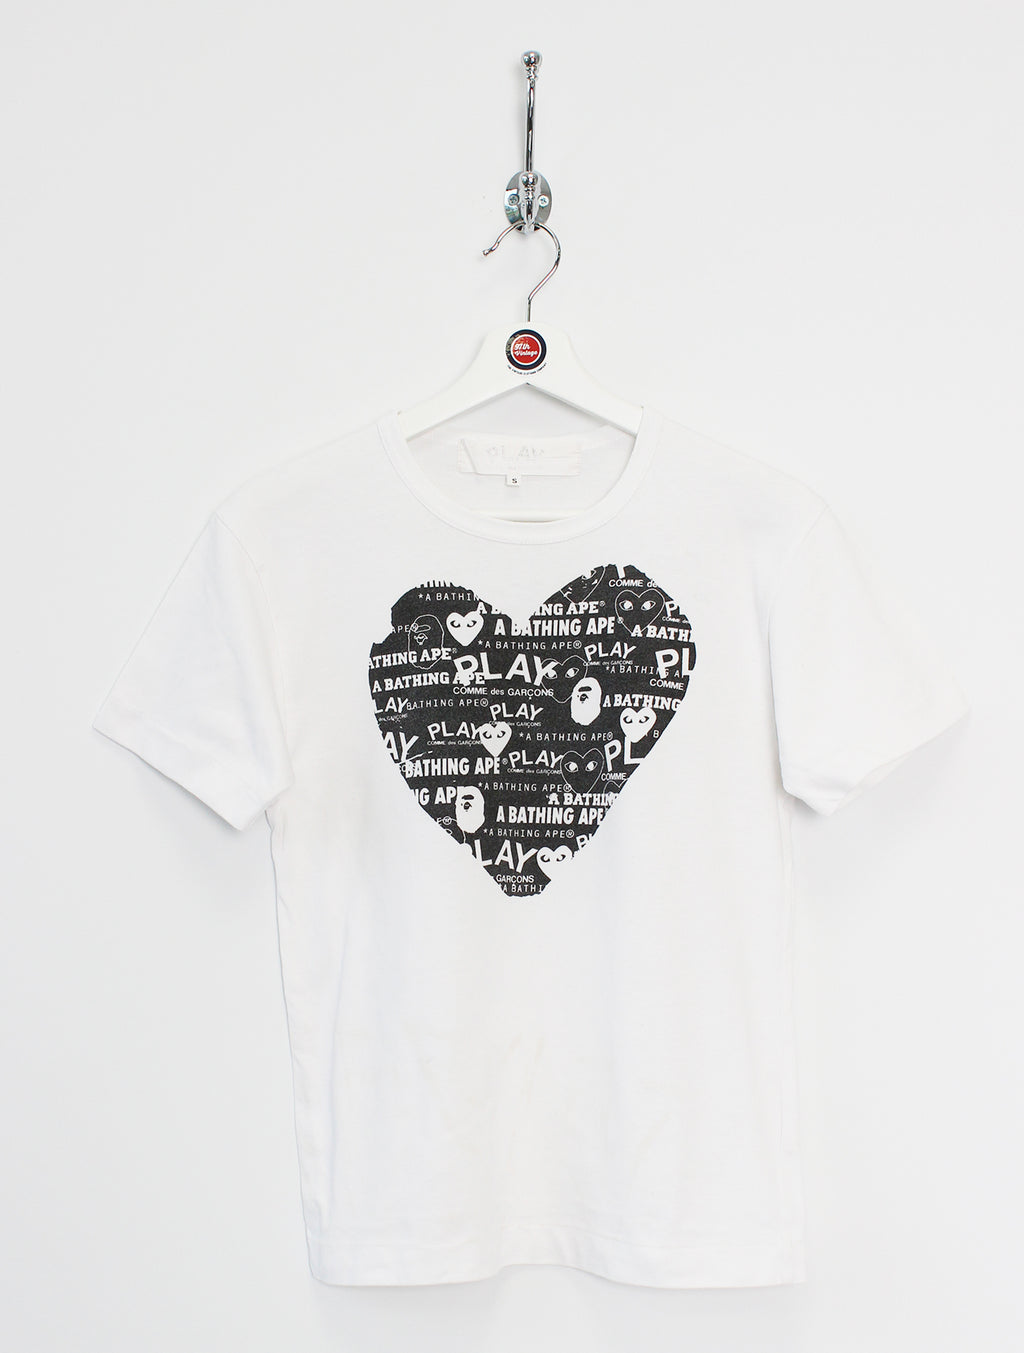 A Bathing Ape x PLAY Comme des Garcons T-Shirt (XS)